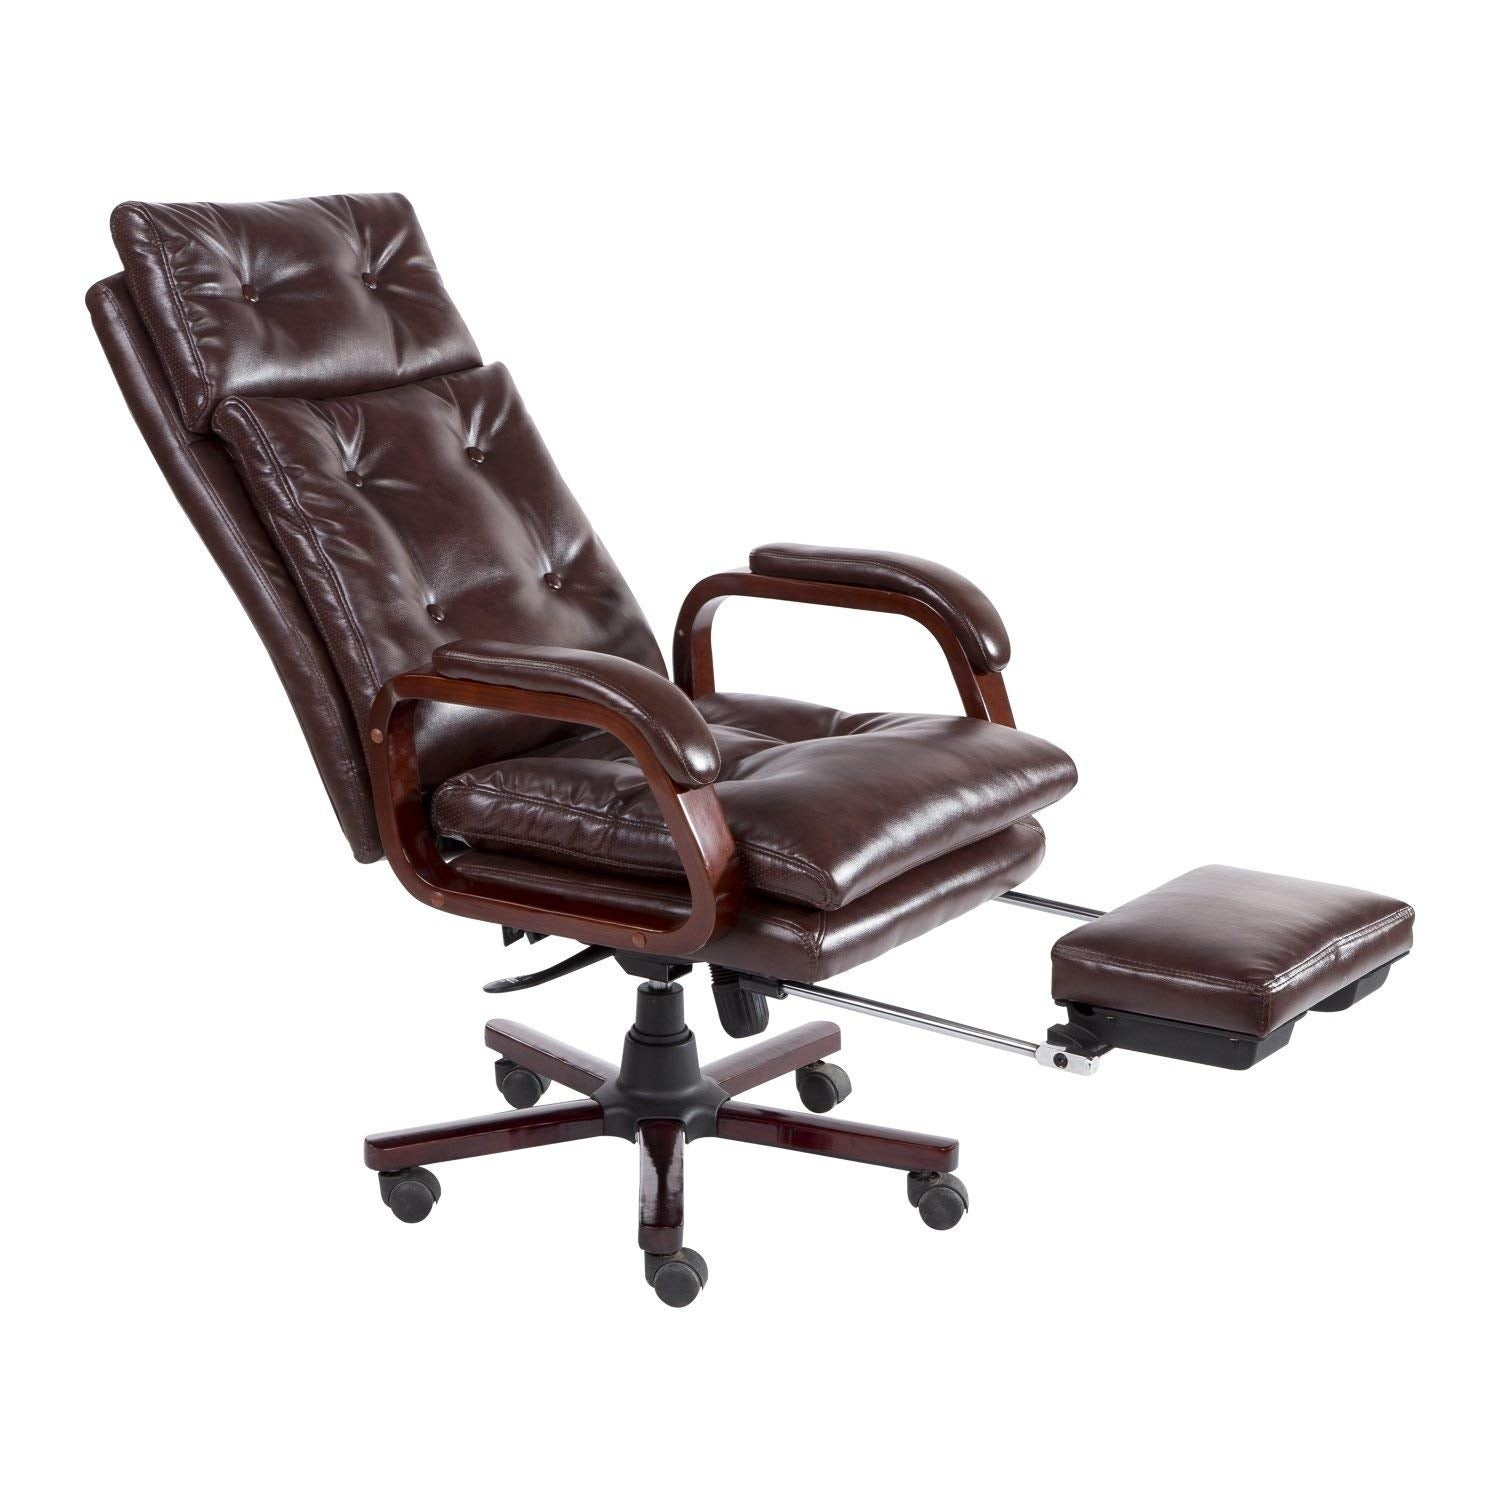 HomCom High Back PU Leather Executive Reclining Home Office Chair With Retractable Footrest (High Back)